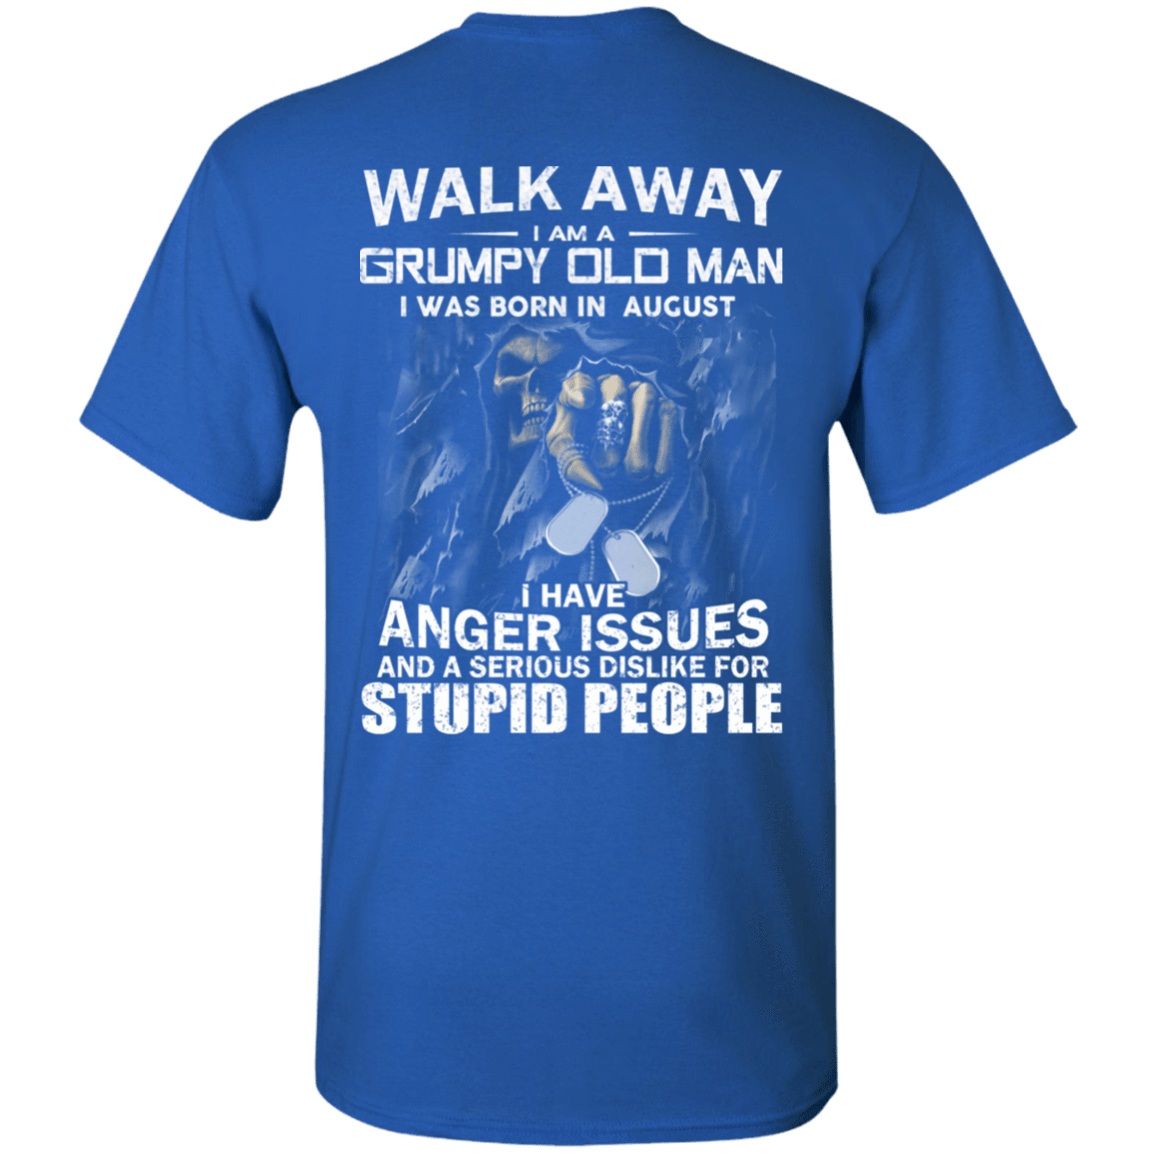 I Am A Grumpy Old Man I Was Born In August T-Shirts, Hoodies, Tank 1049-9971-80688248-48286 - Tee Ript